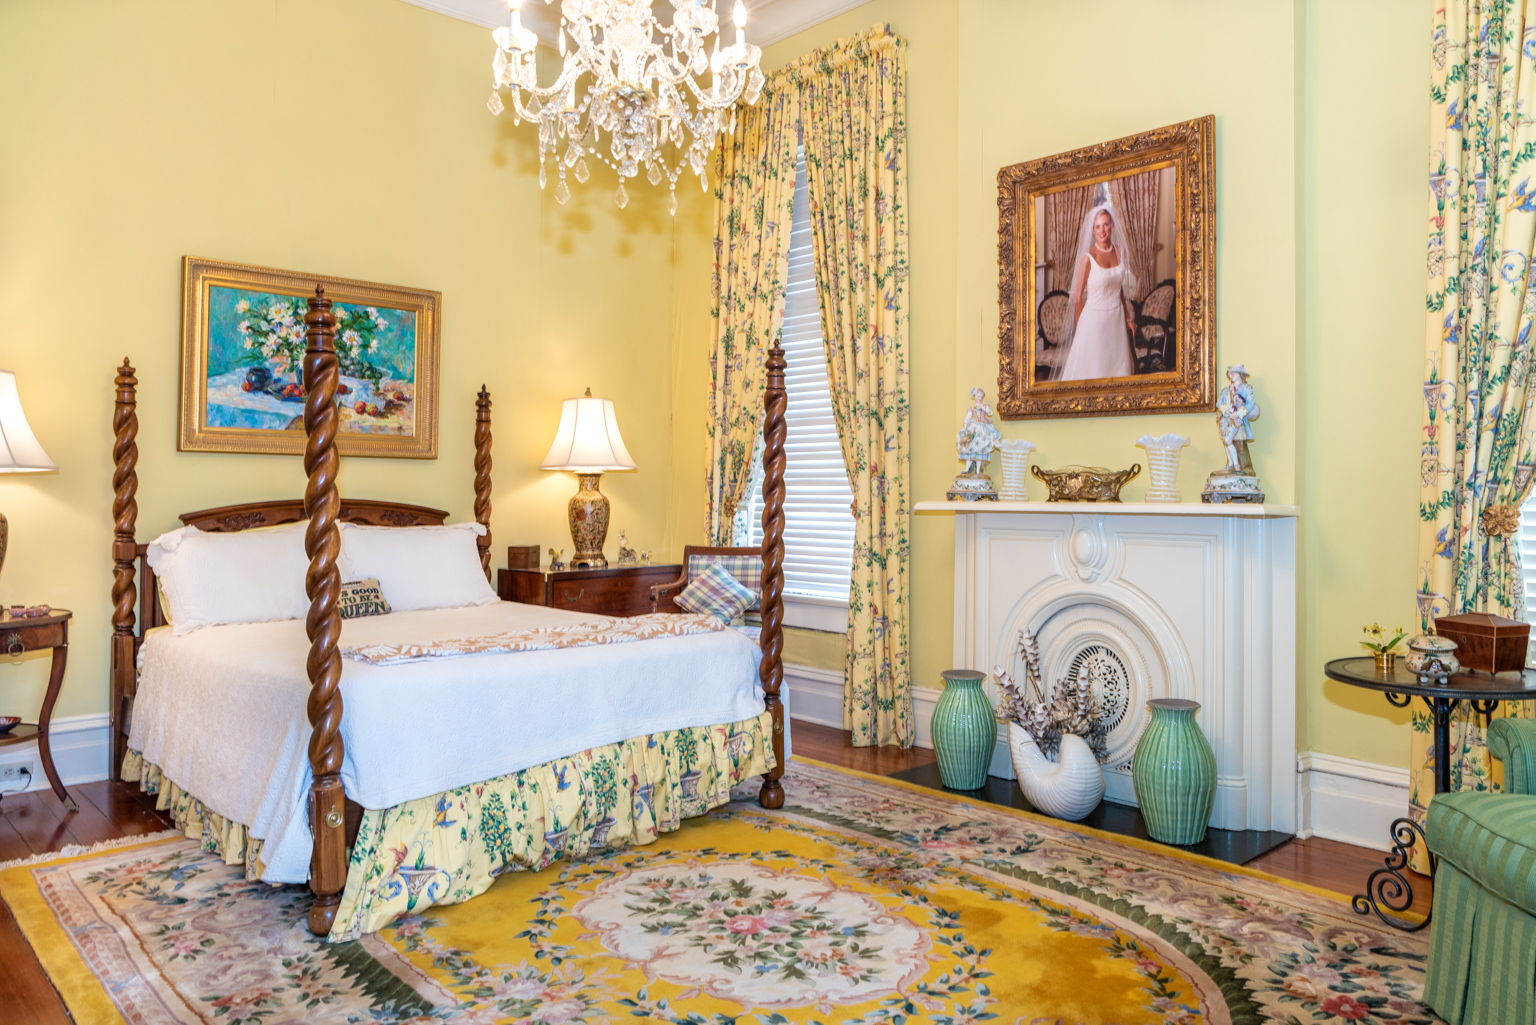 The front guest room is lovely